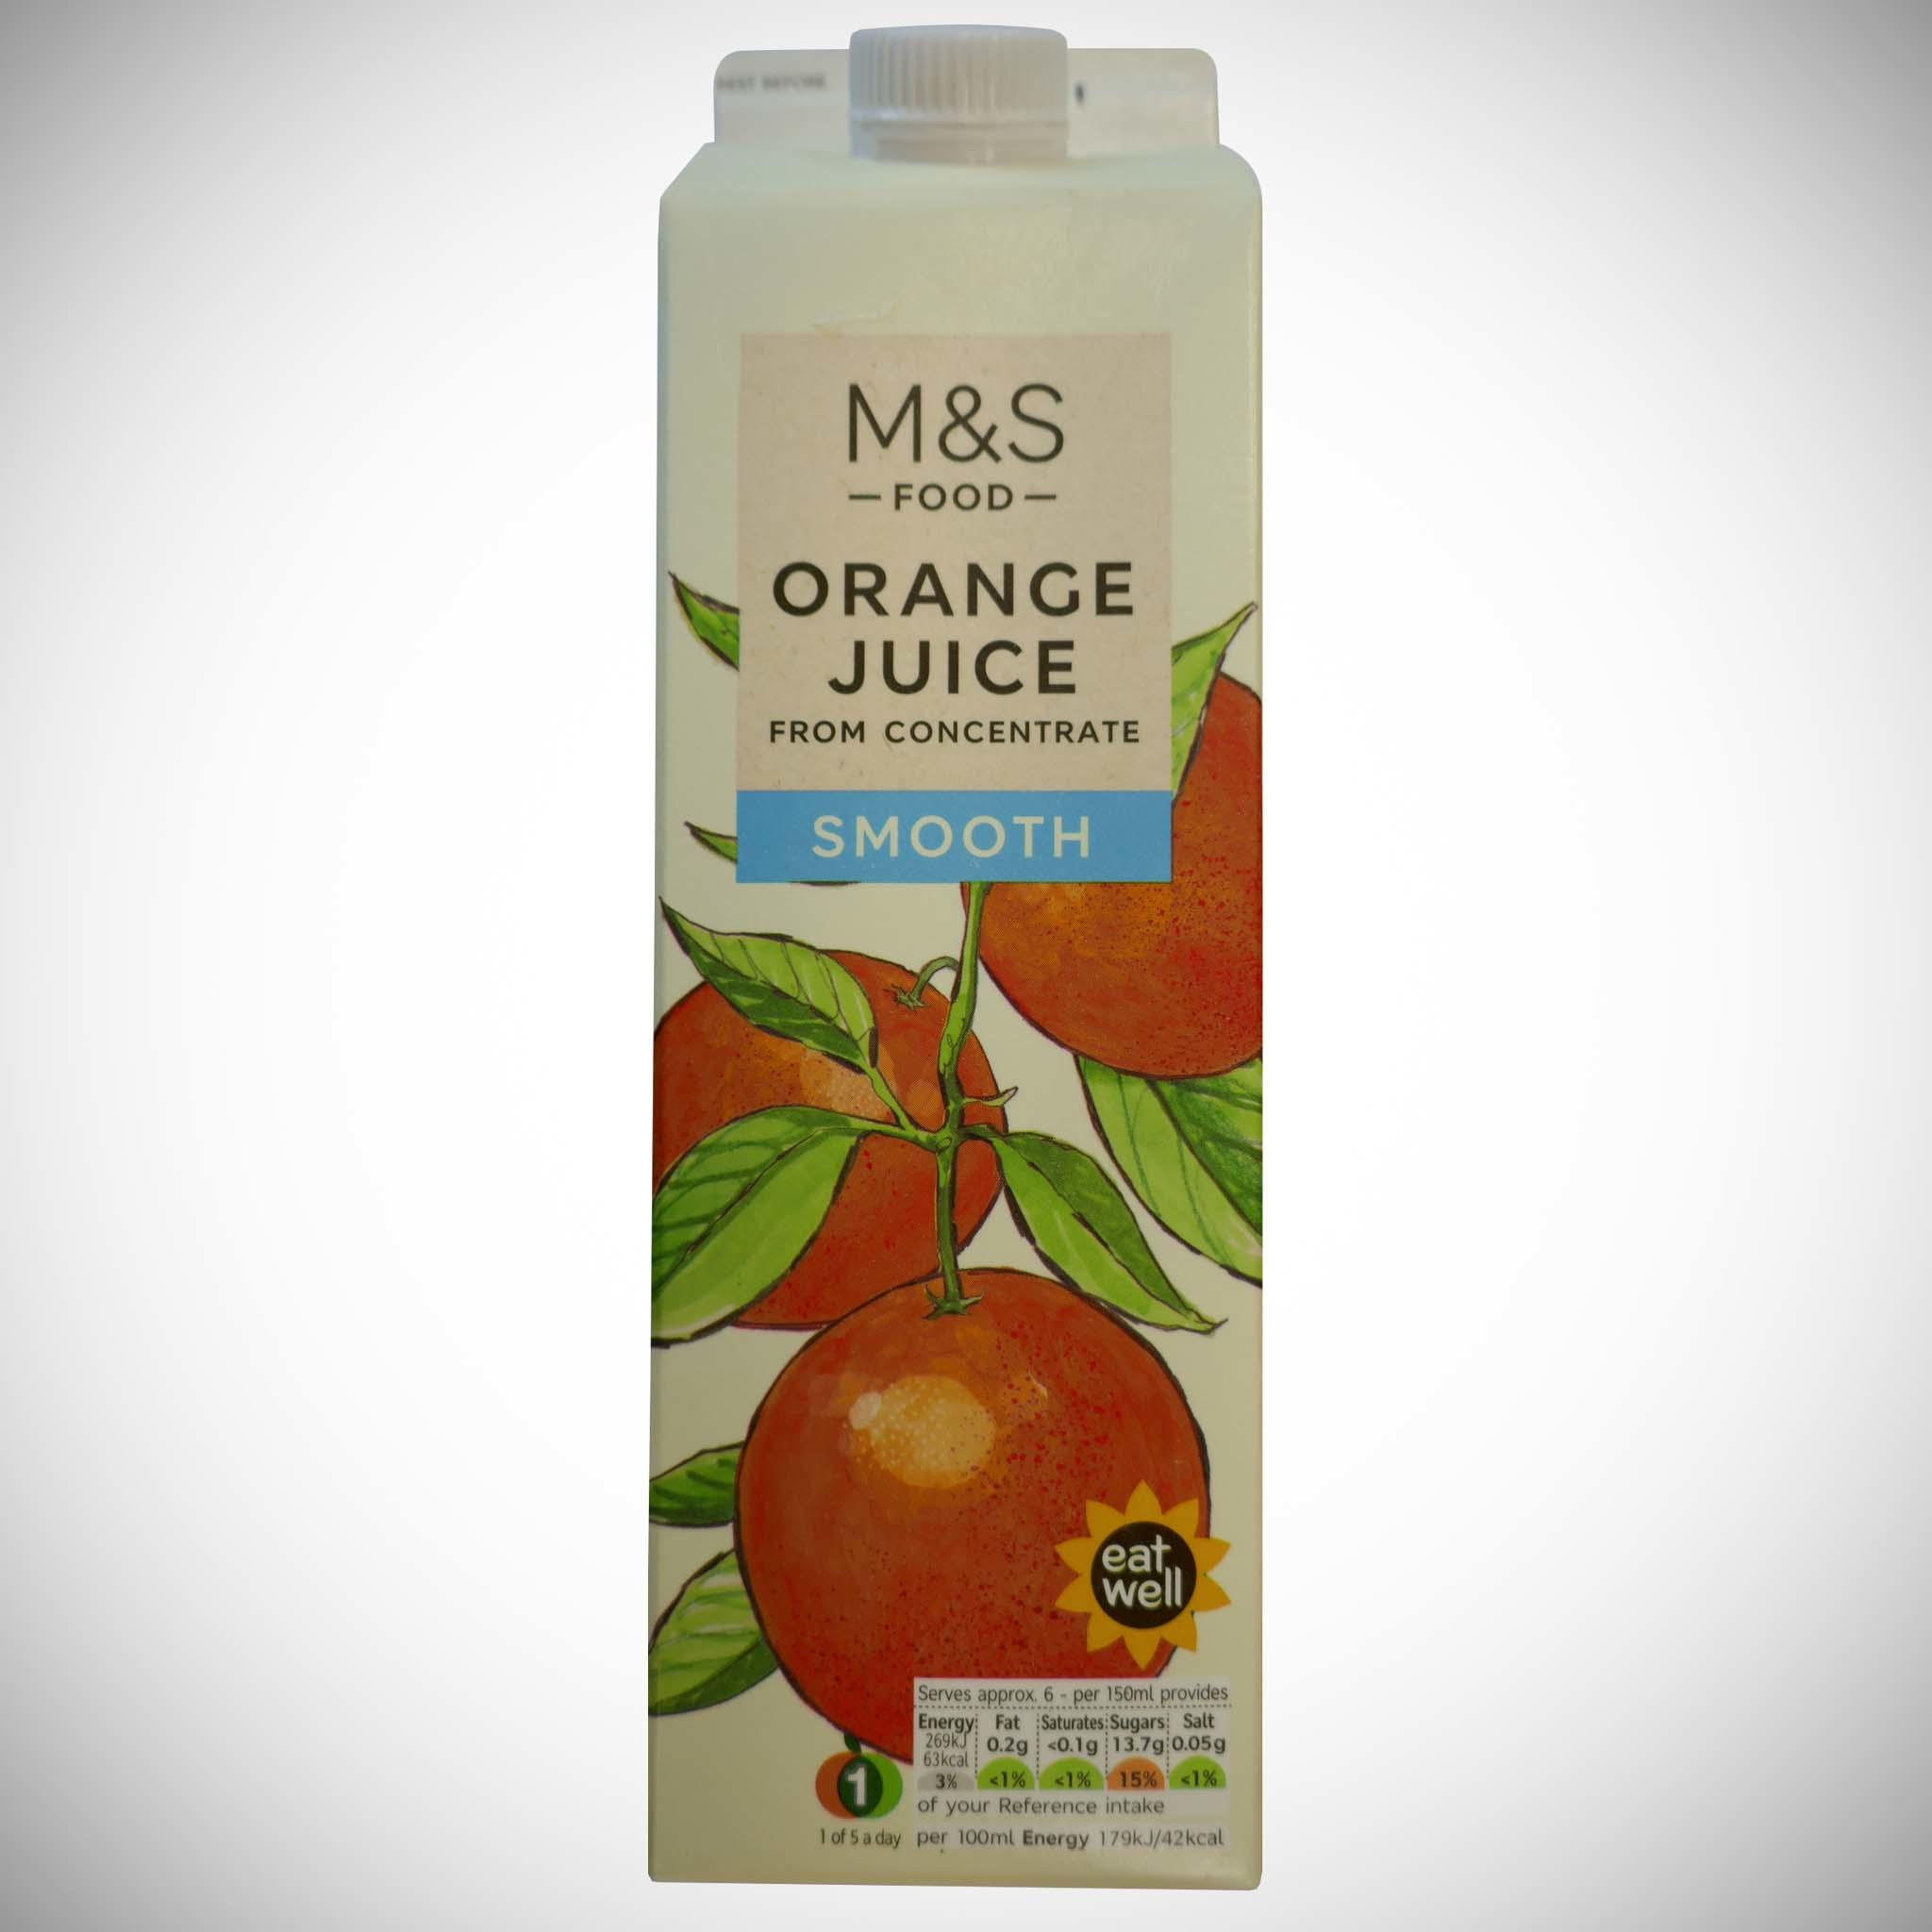 Smooth Orange Juice (From Concentrate) 1 litre